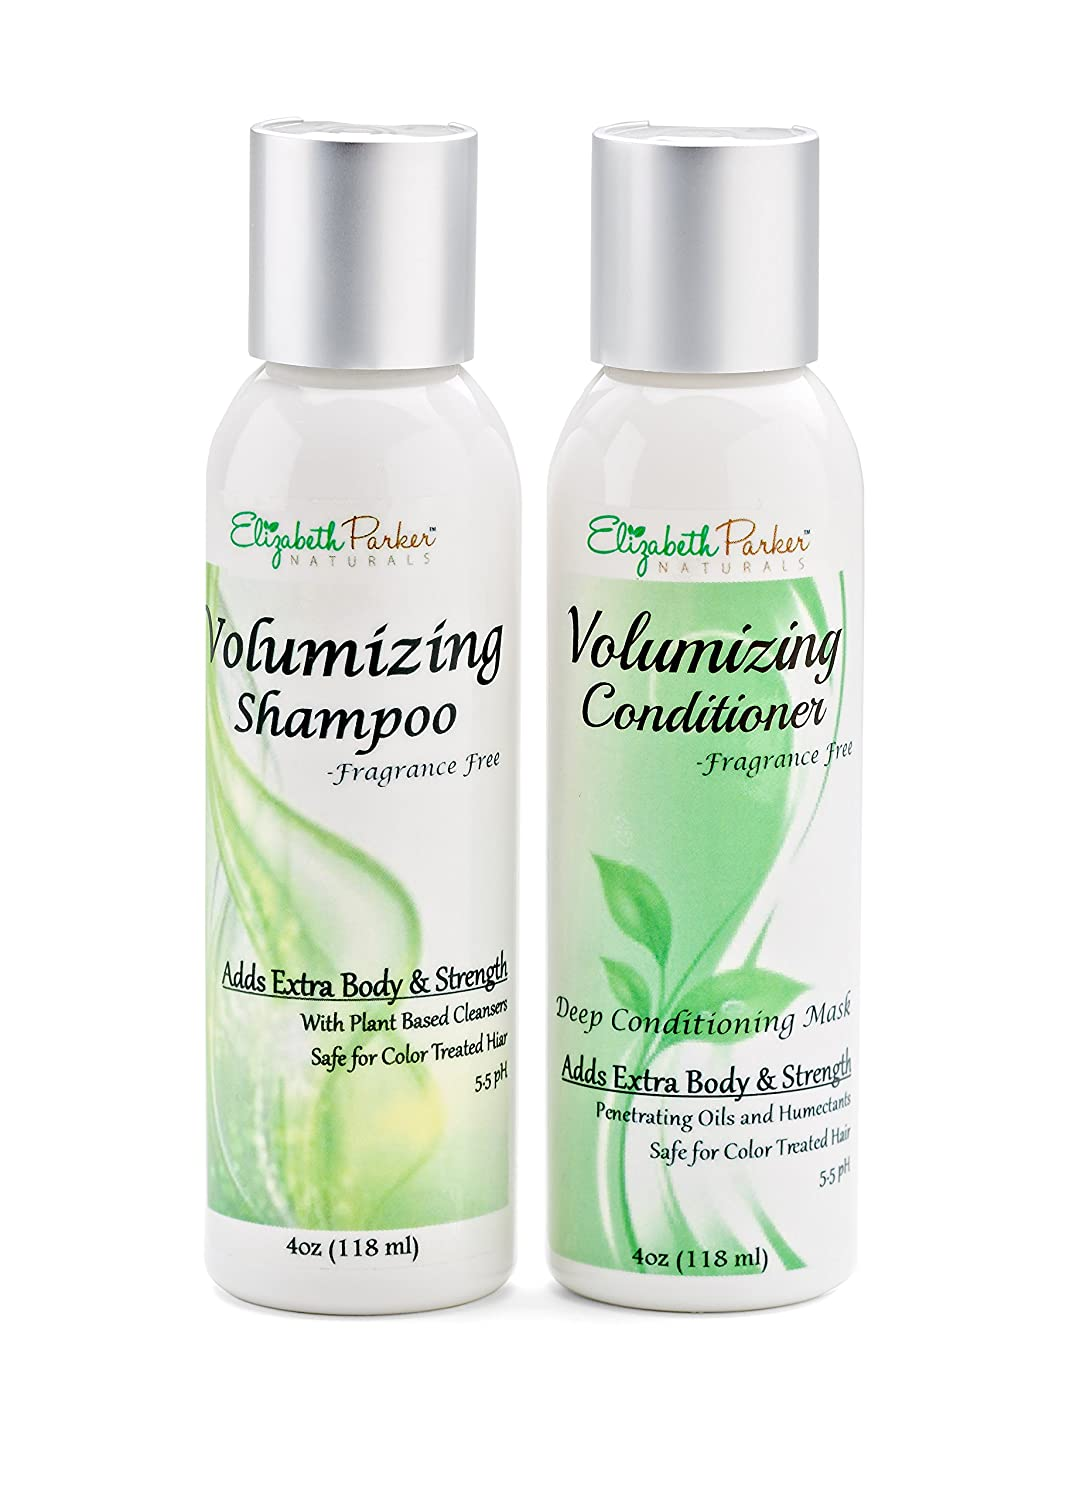 Best Volumizing Shampoo and Conditioner Set for Fine Hair - Boost Volume - Promotes Hair Growth - 100% Natural and Organic - Sulfate Free and Fragrance Free - 4oz